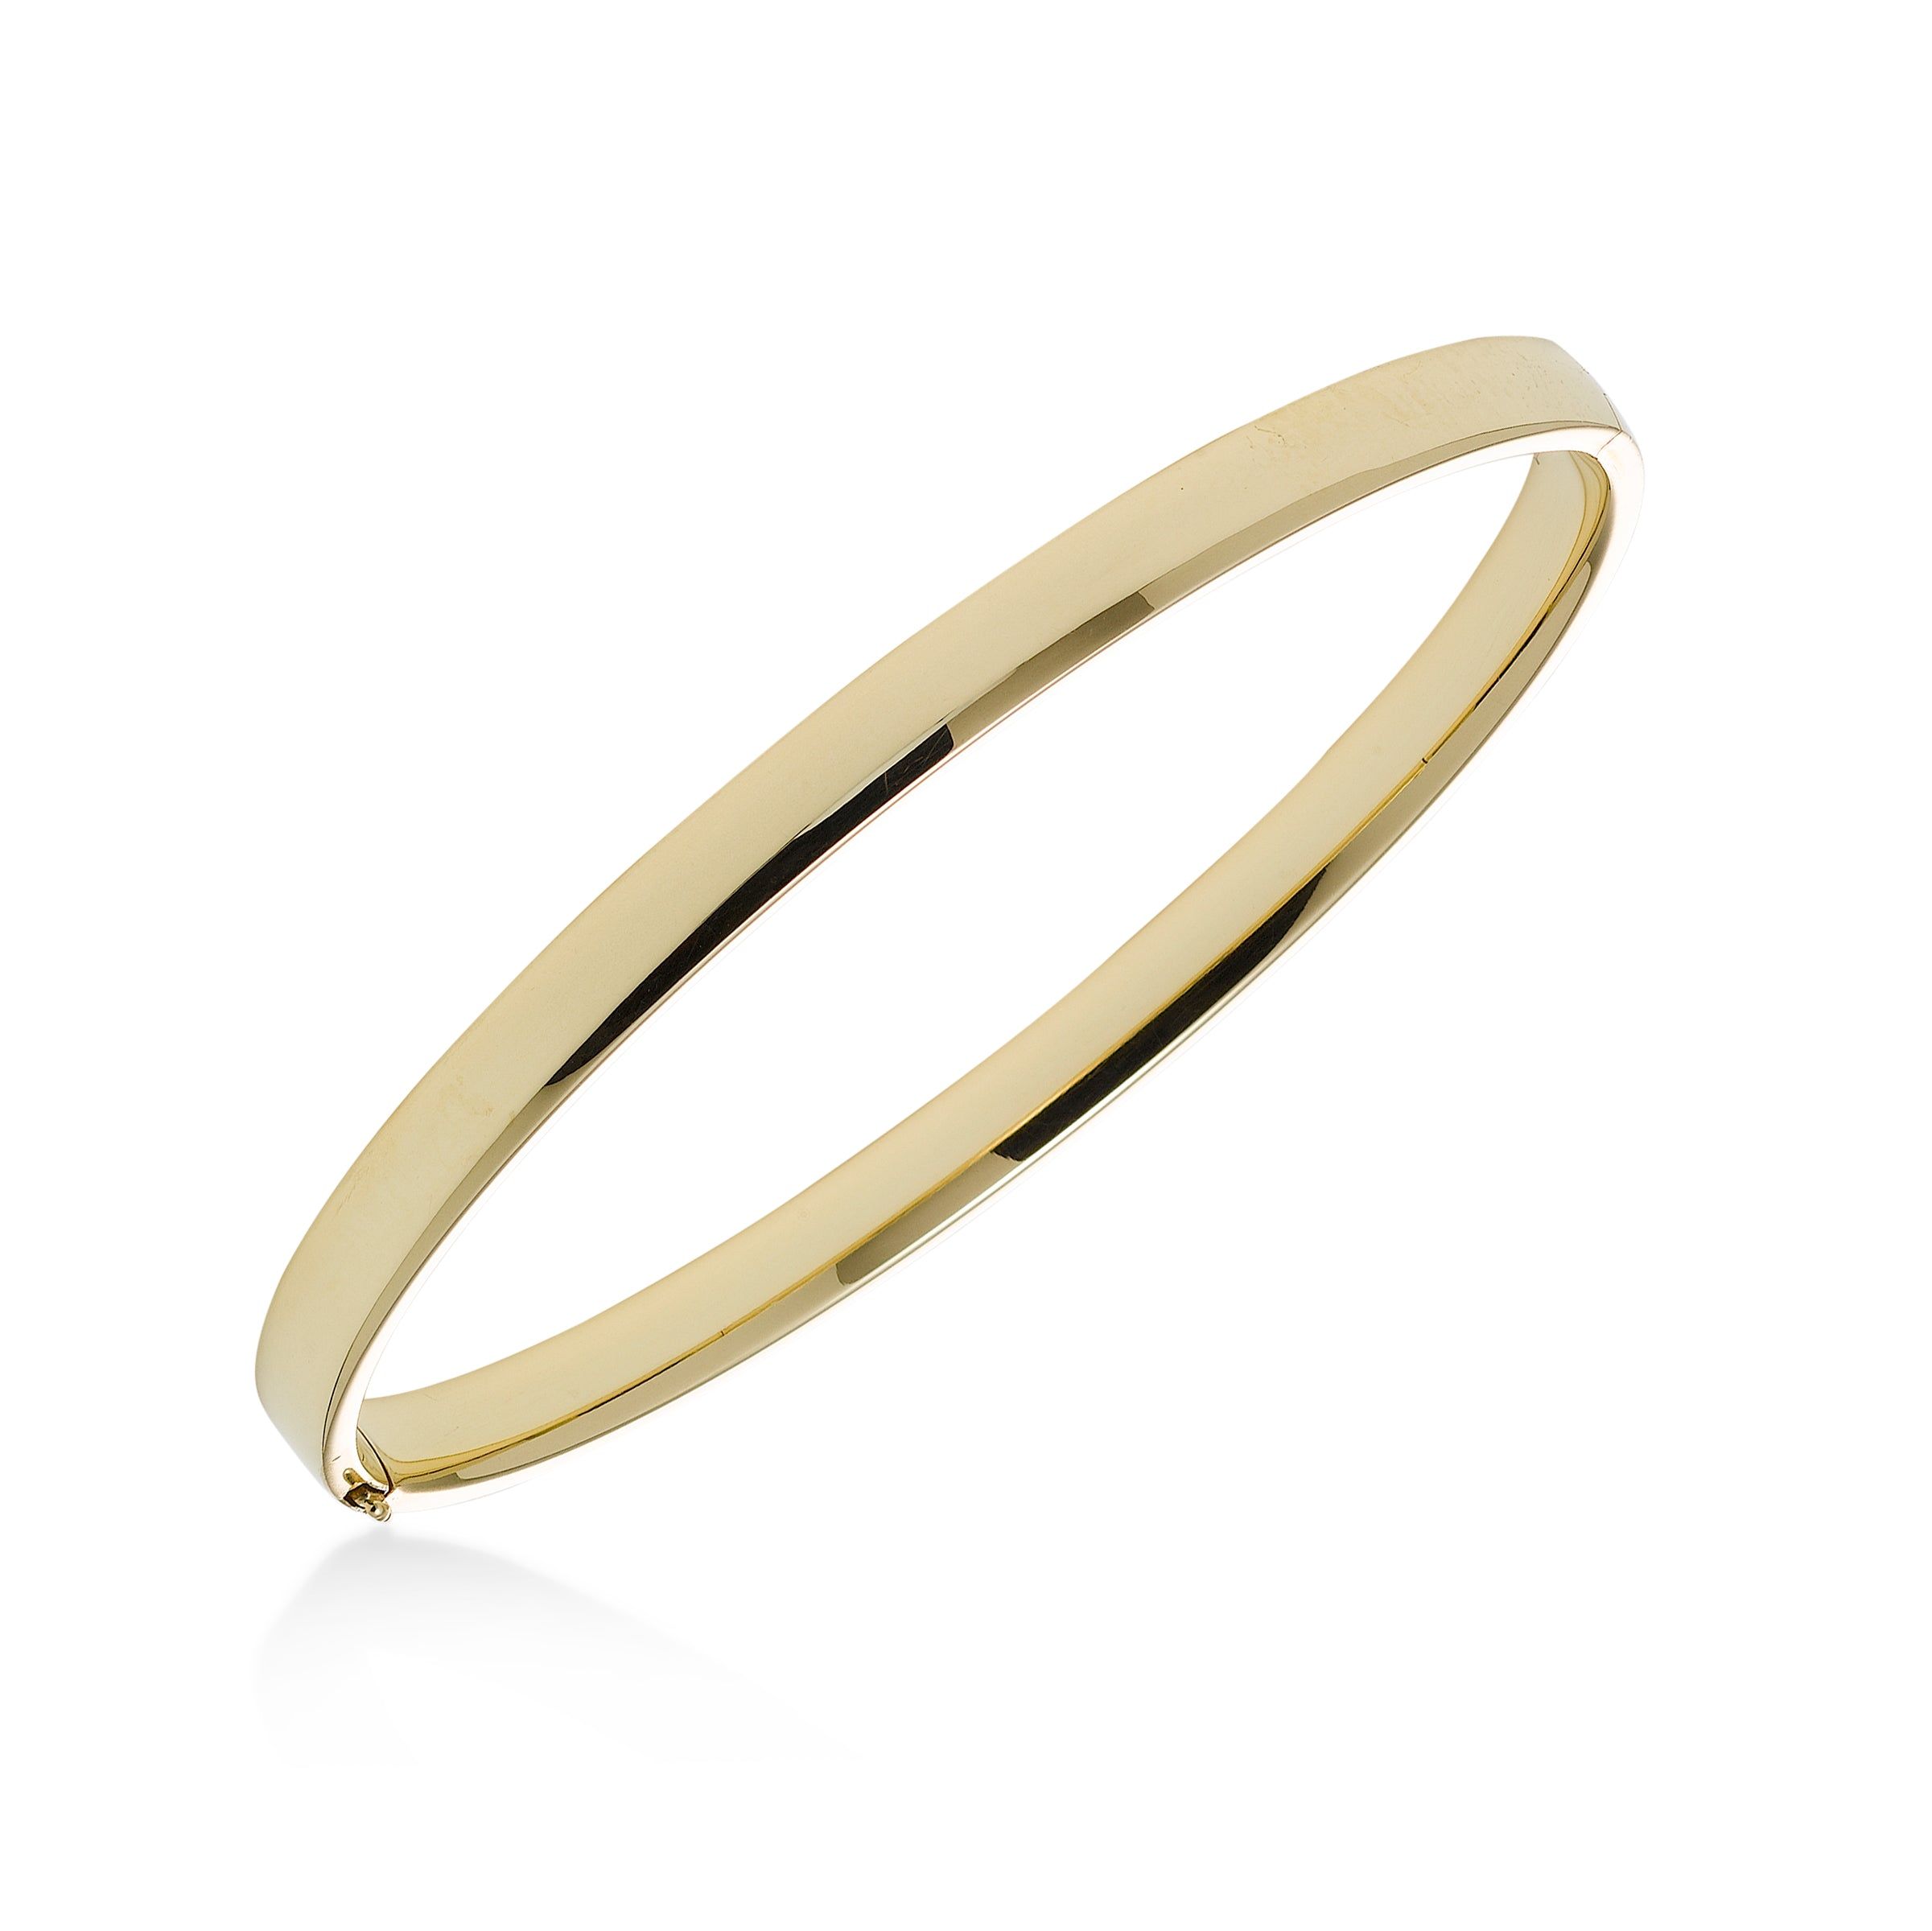 3090ab7ed83 Fortunoff Fine Jewelry. Home; Flat Bangle Bracelet, 14K Yellow Gold